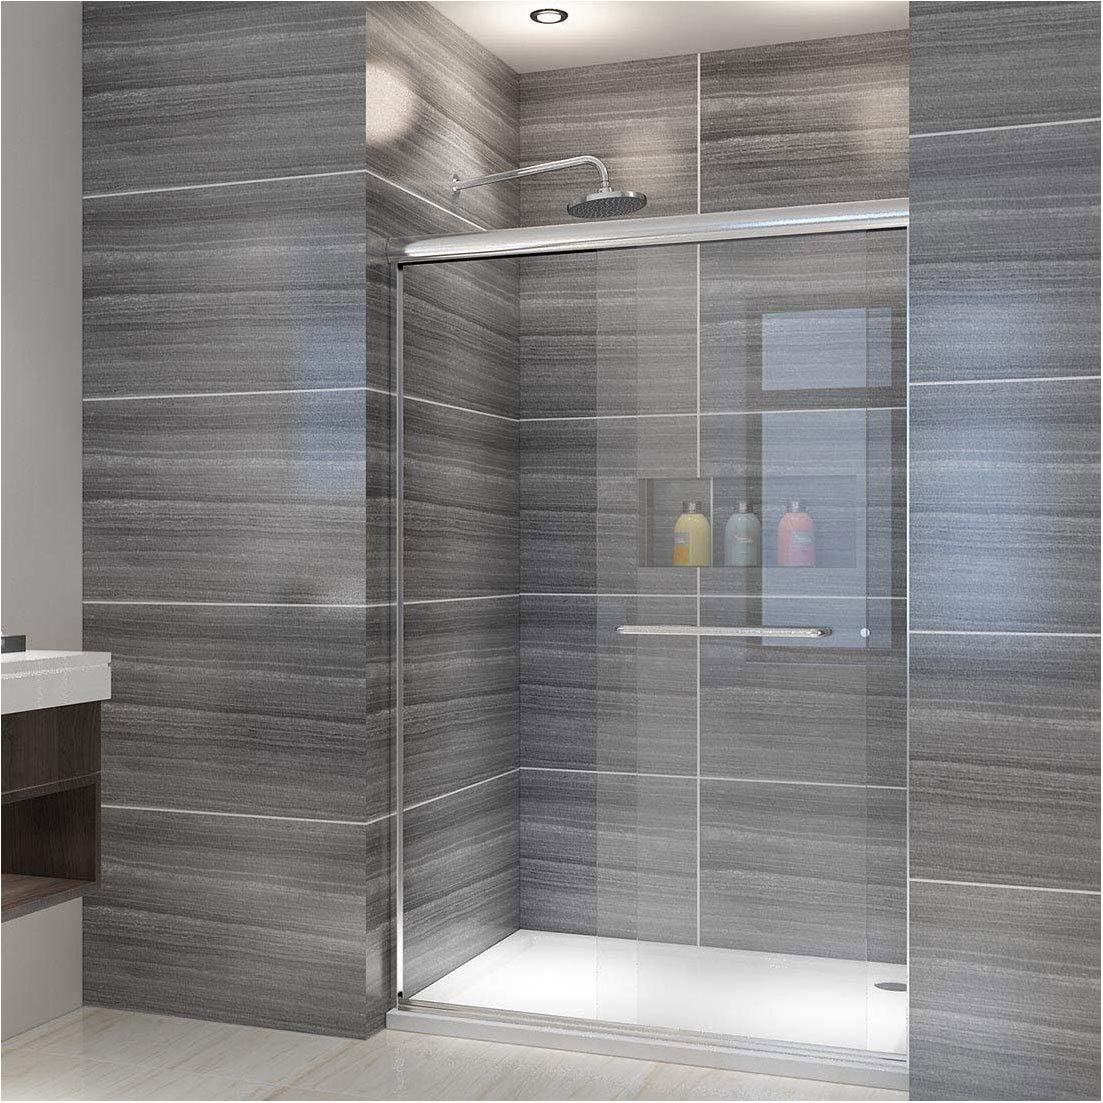 ELEGANT Showers 46.5 in. to 48 in. W x 72 in. H, Semi-Frameless 2 Bypass Sliding Shower Door Enclosure, 1 4 in. Clear Glass, Chrome Finish